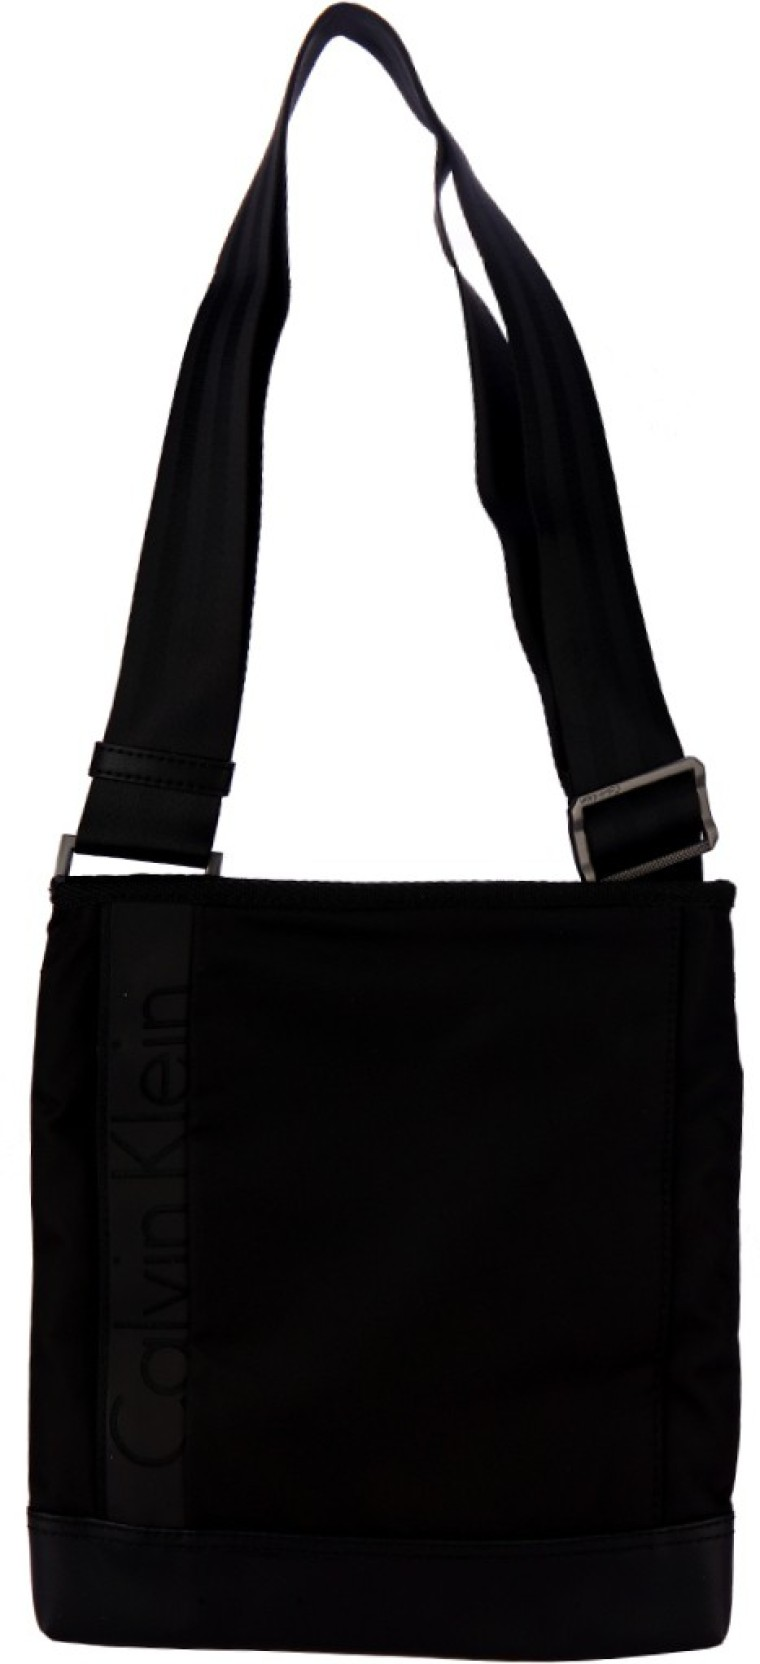 b43e18d18ecc5 Calvin Klein Men Casual Black Nylon Sling Bag Black - Price in India ...